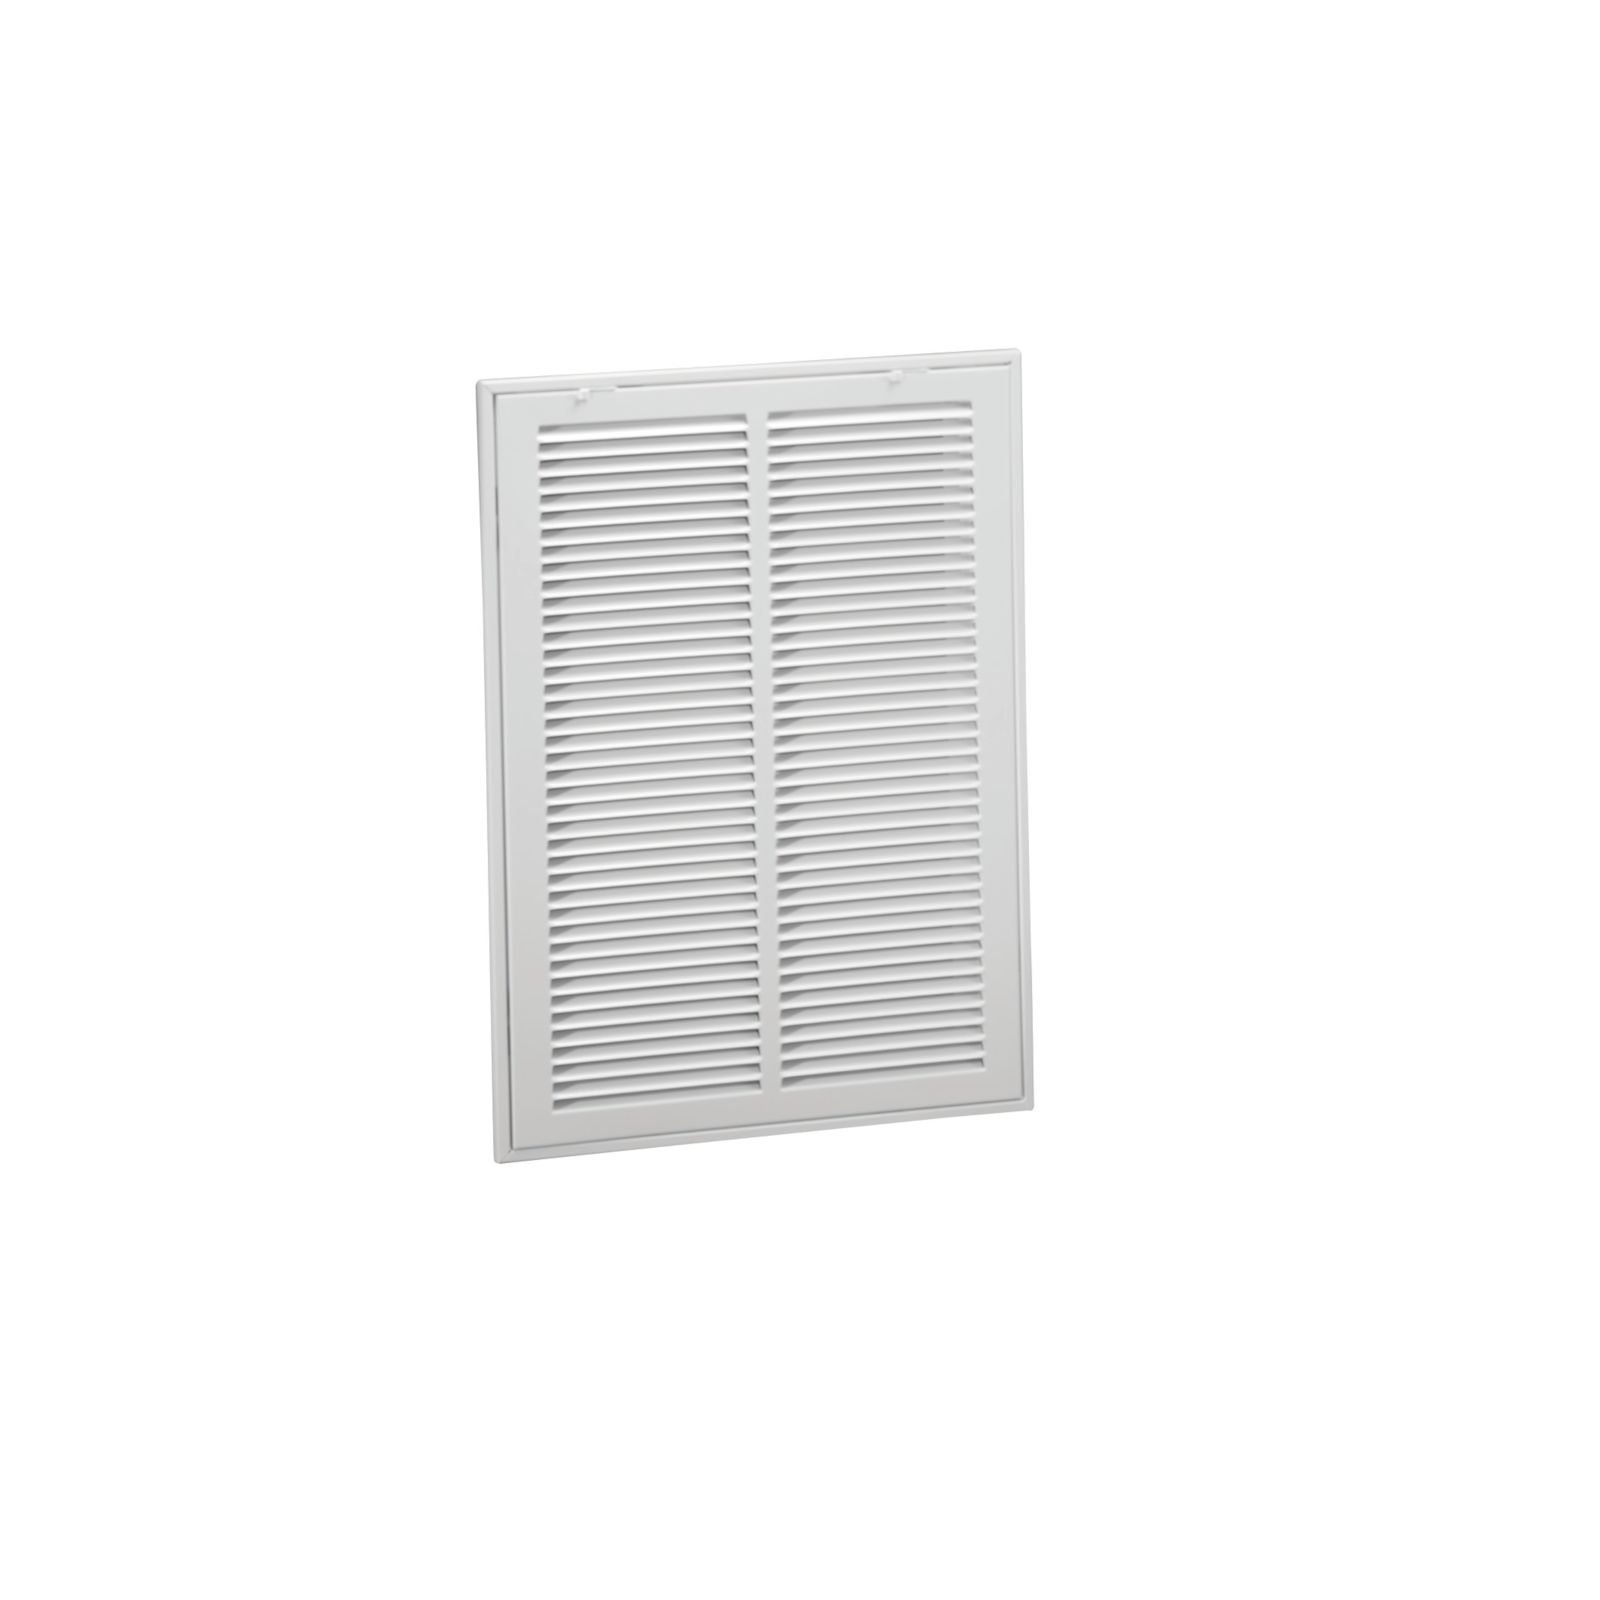 "Hart & Cooley 043519 - #673 Steel Return Air Filter Grille, White Finish, 20"" X 20"""